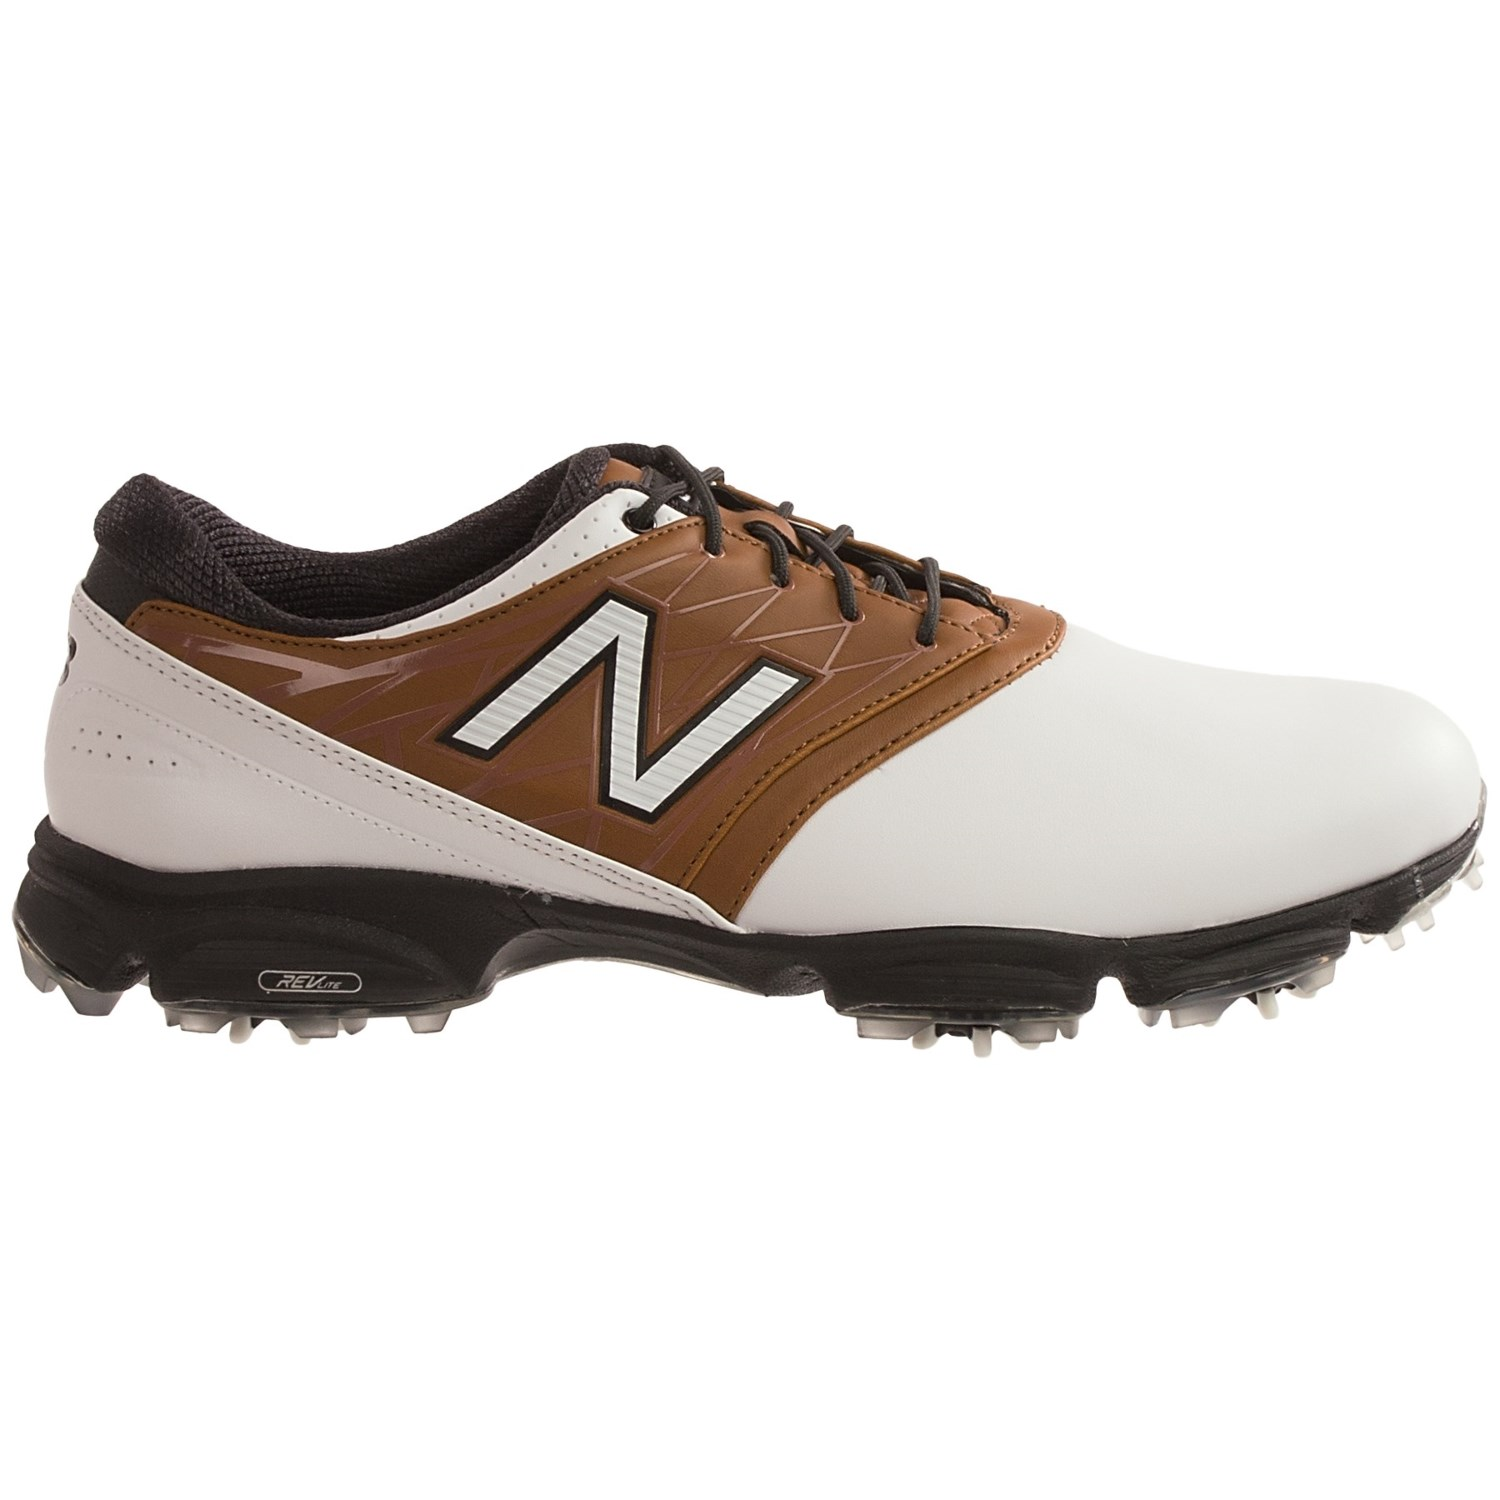 New Balance 2001 Golf Shoes (For Men) - Save 37%